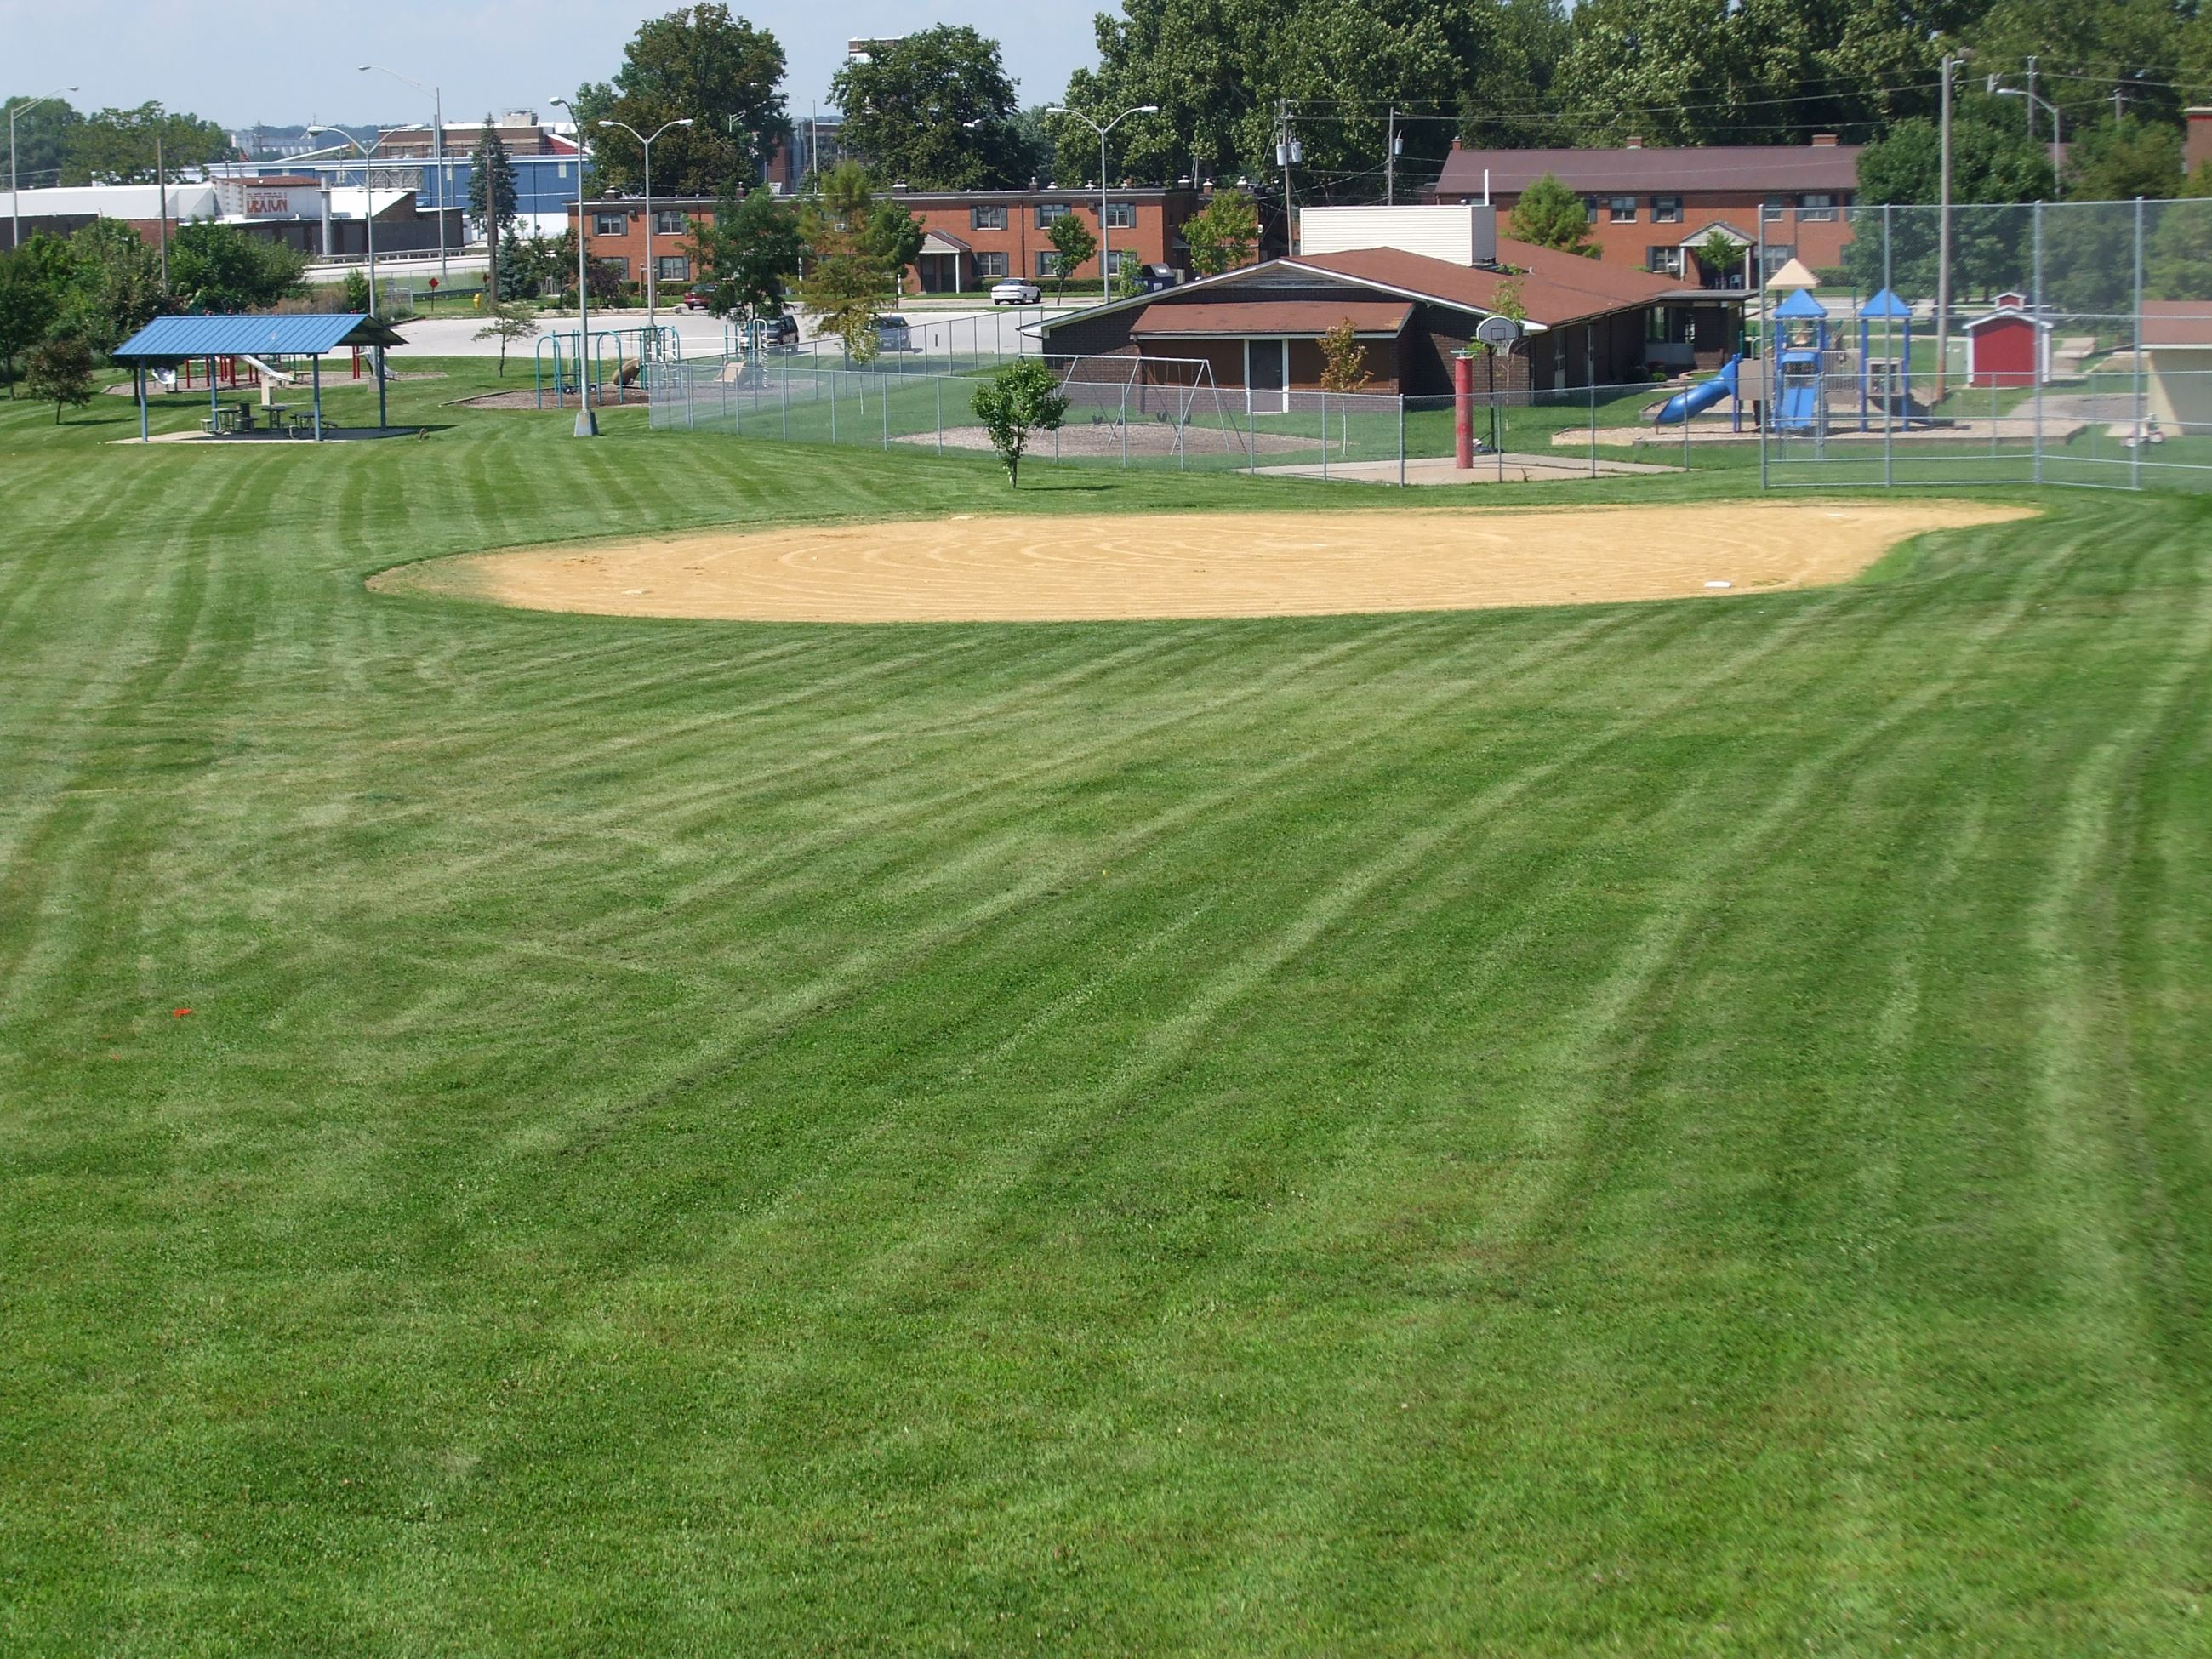 Baseball field at Rauch Park